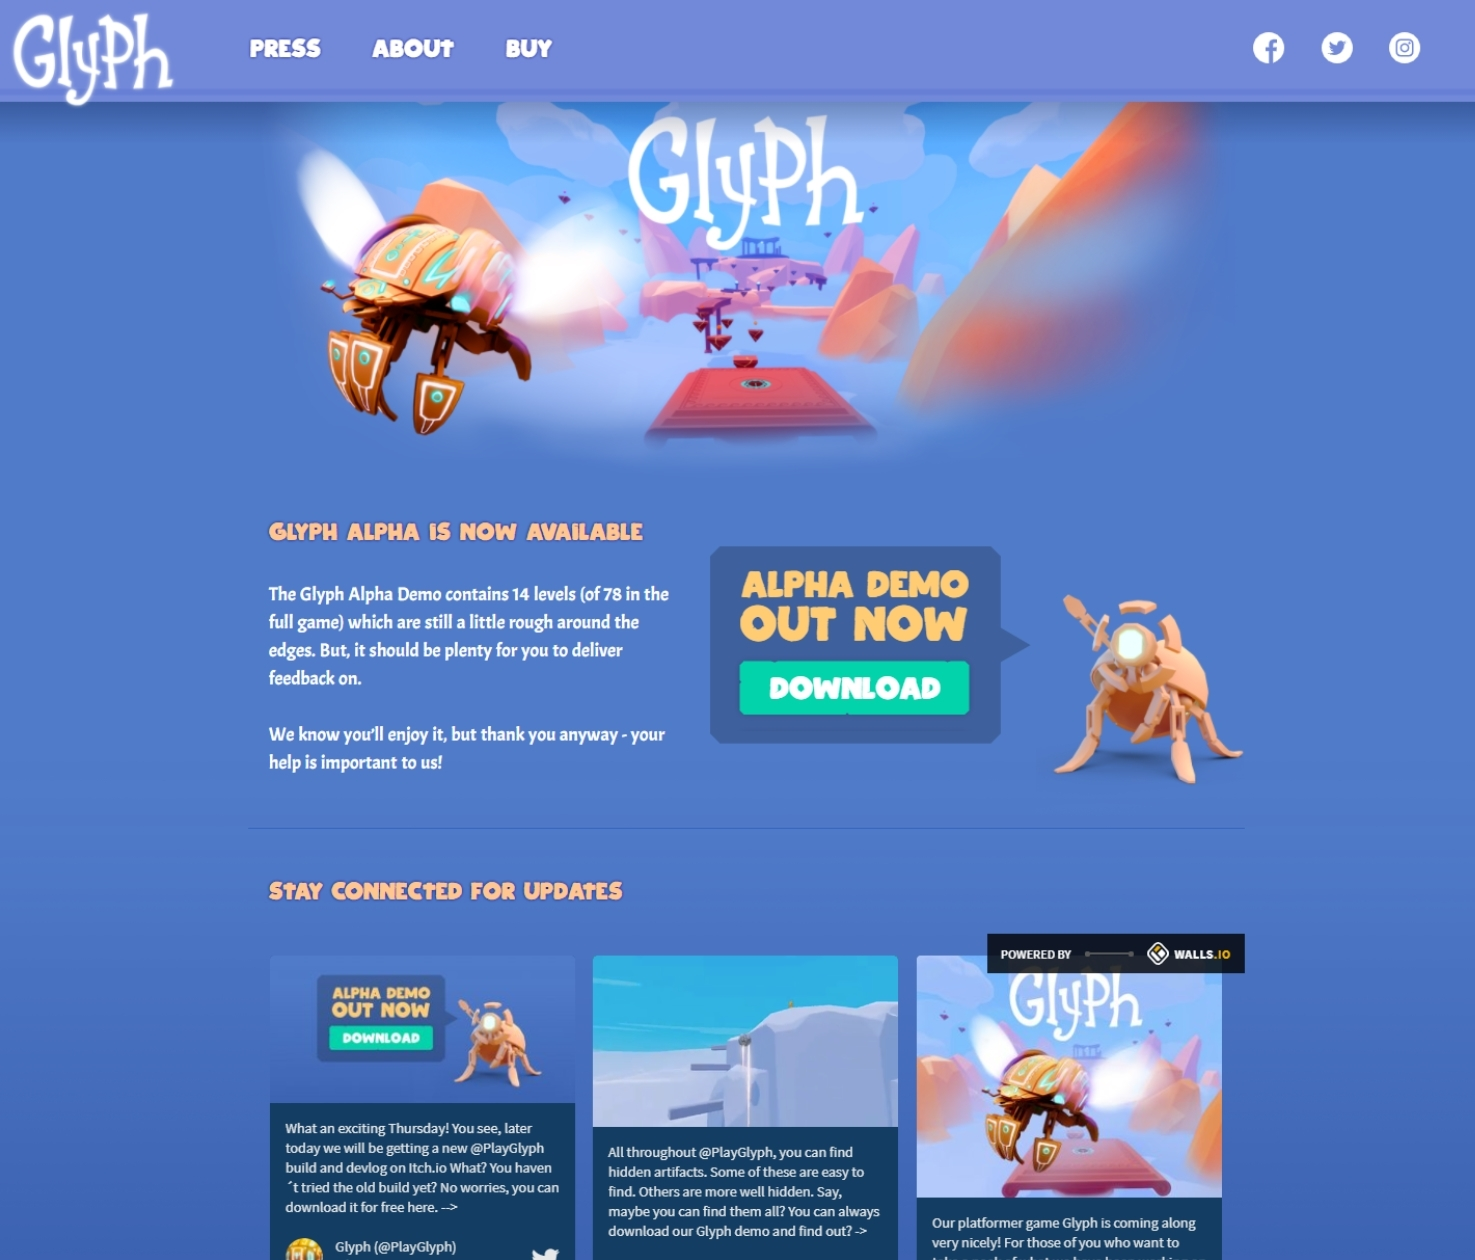 Glyph - New landing page